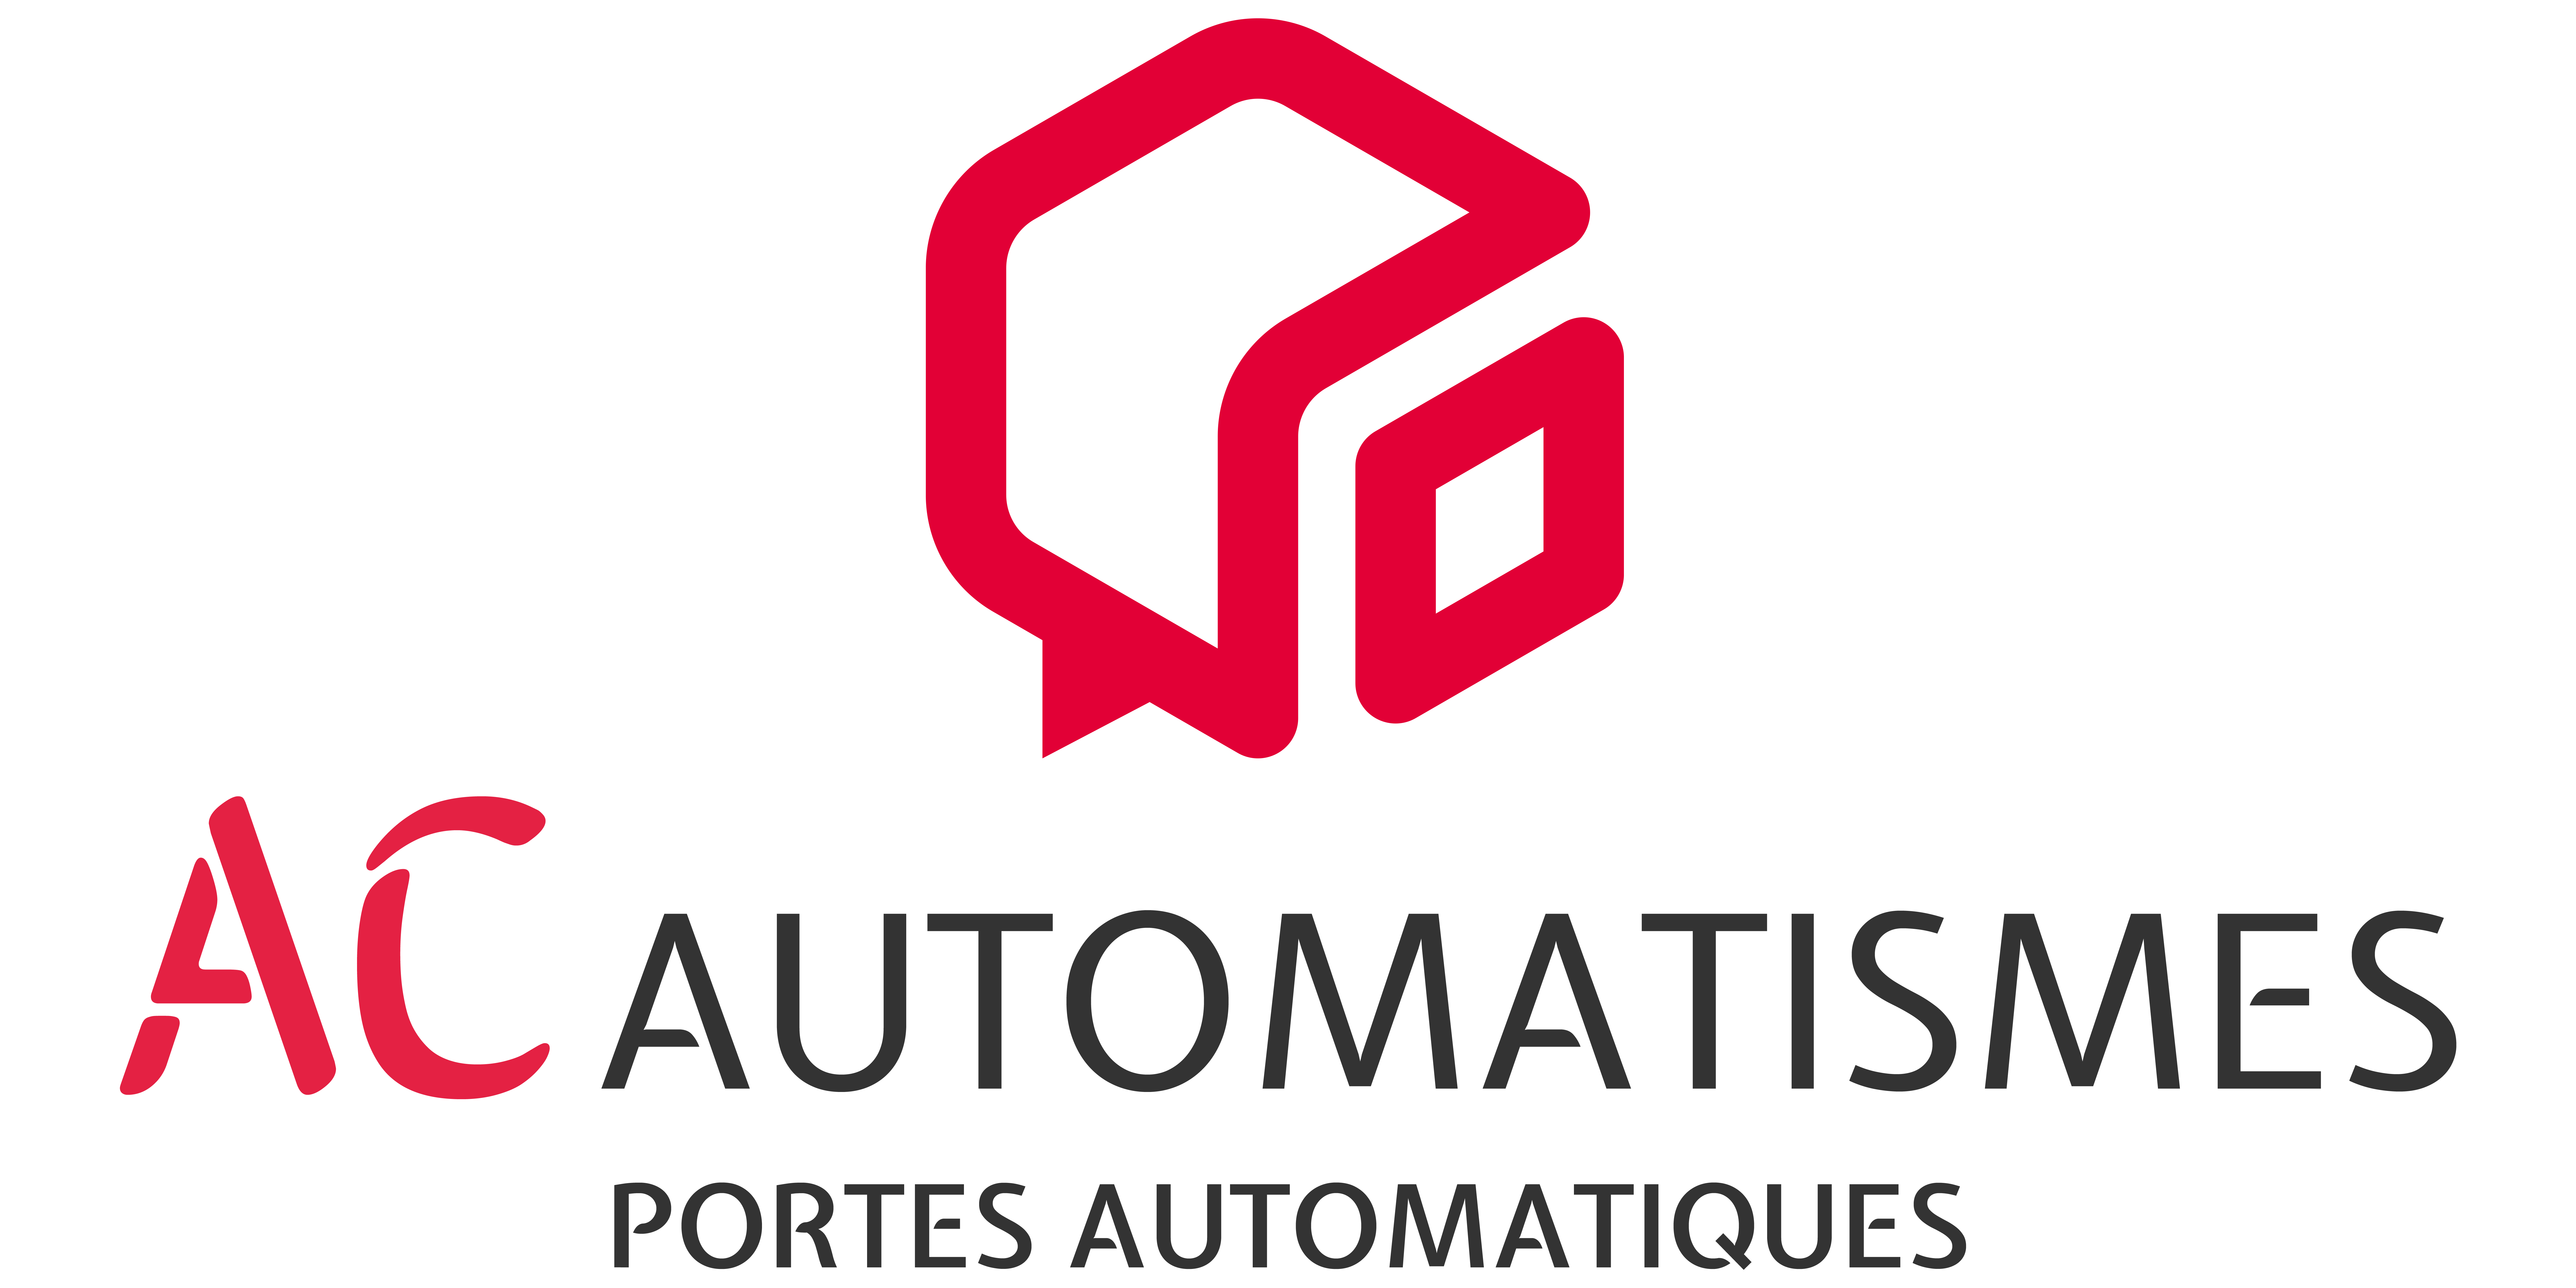 AC Automatismes